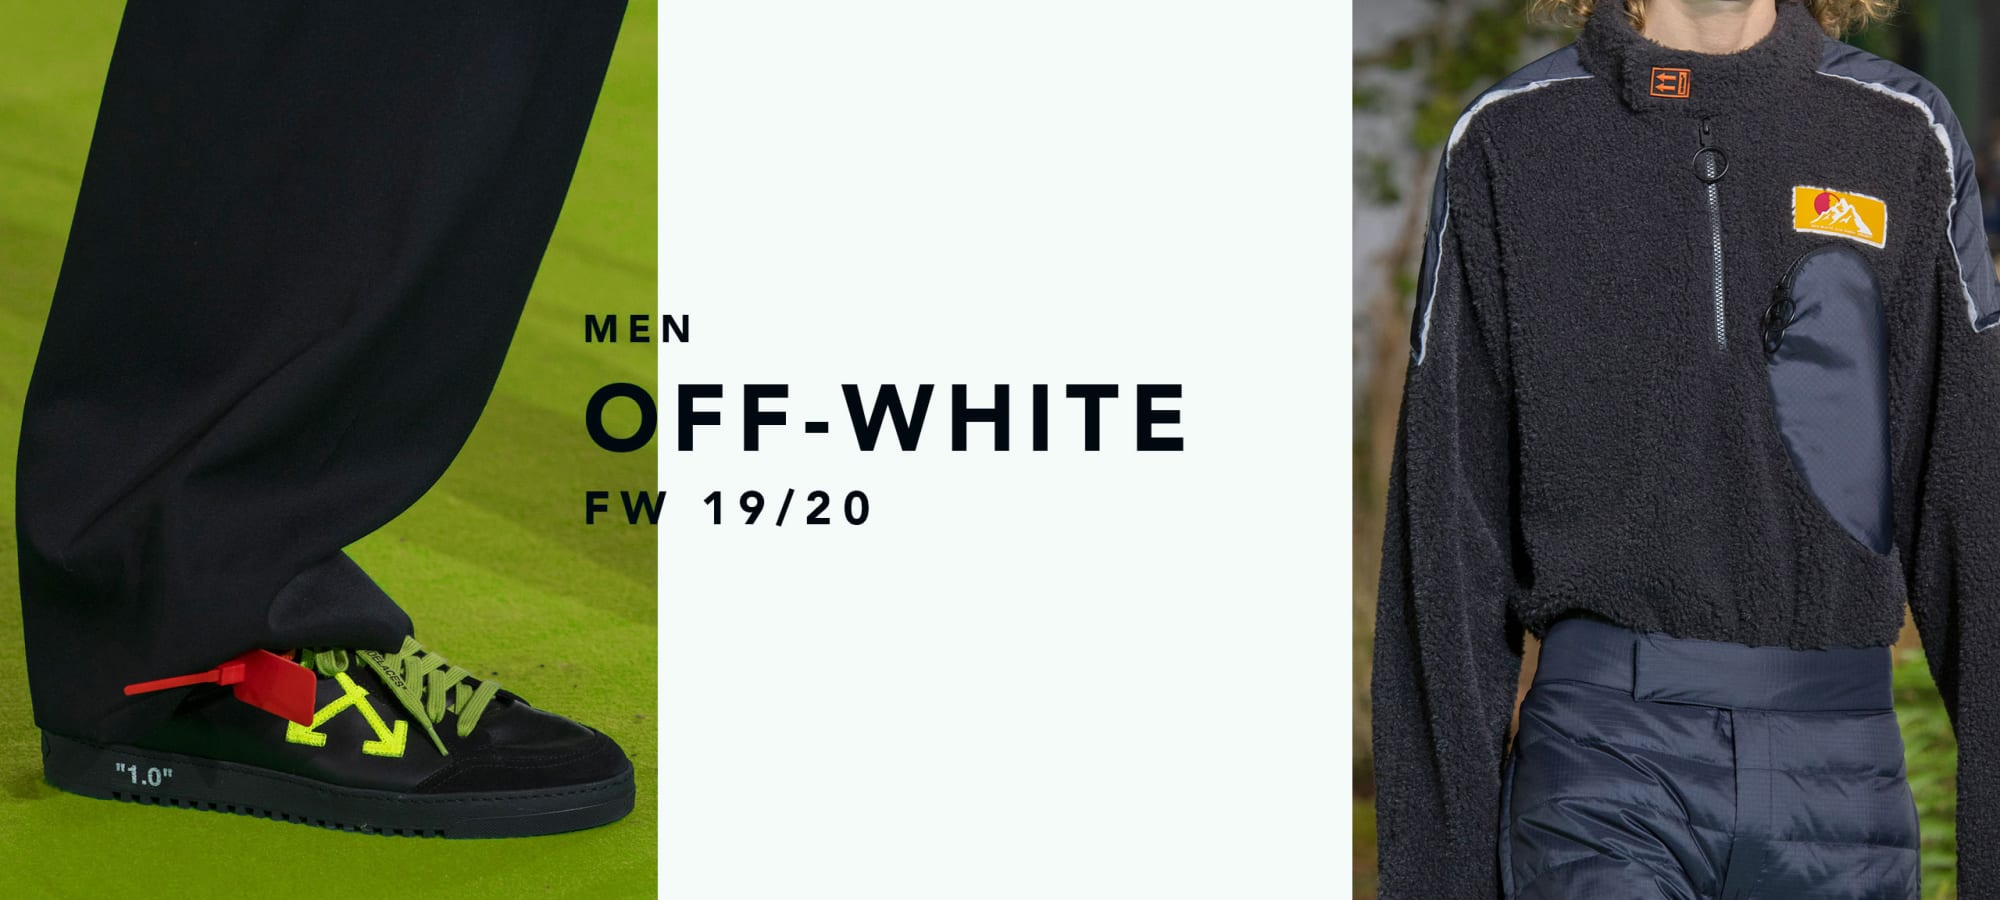 Off-White Men Fall Winter 19/20 by italist